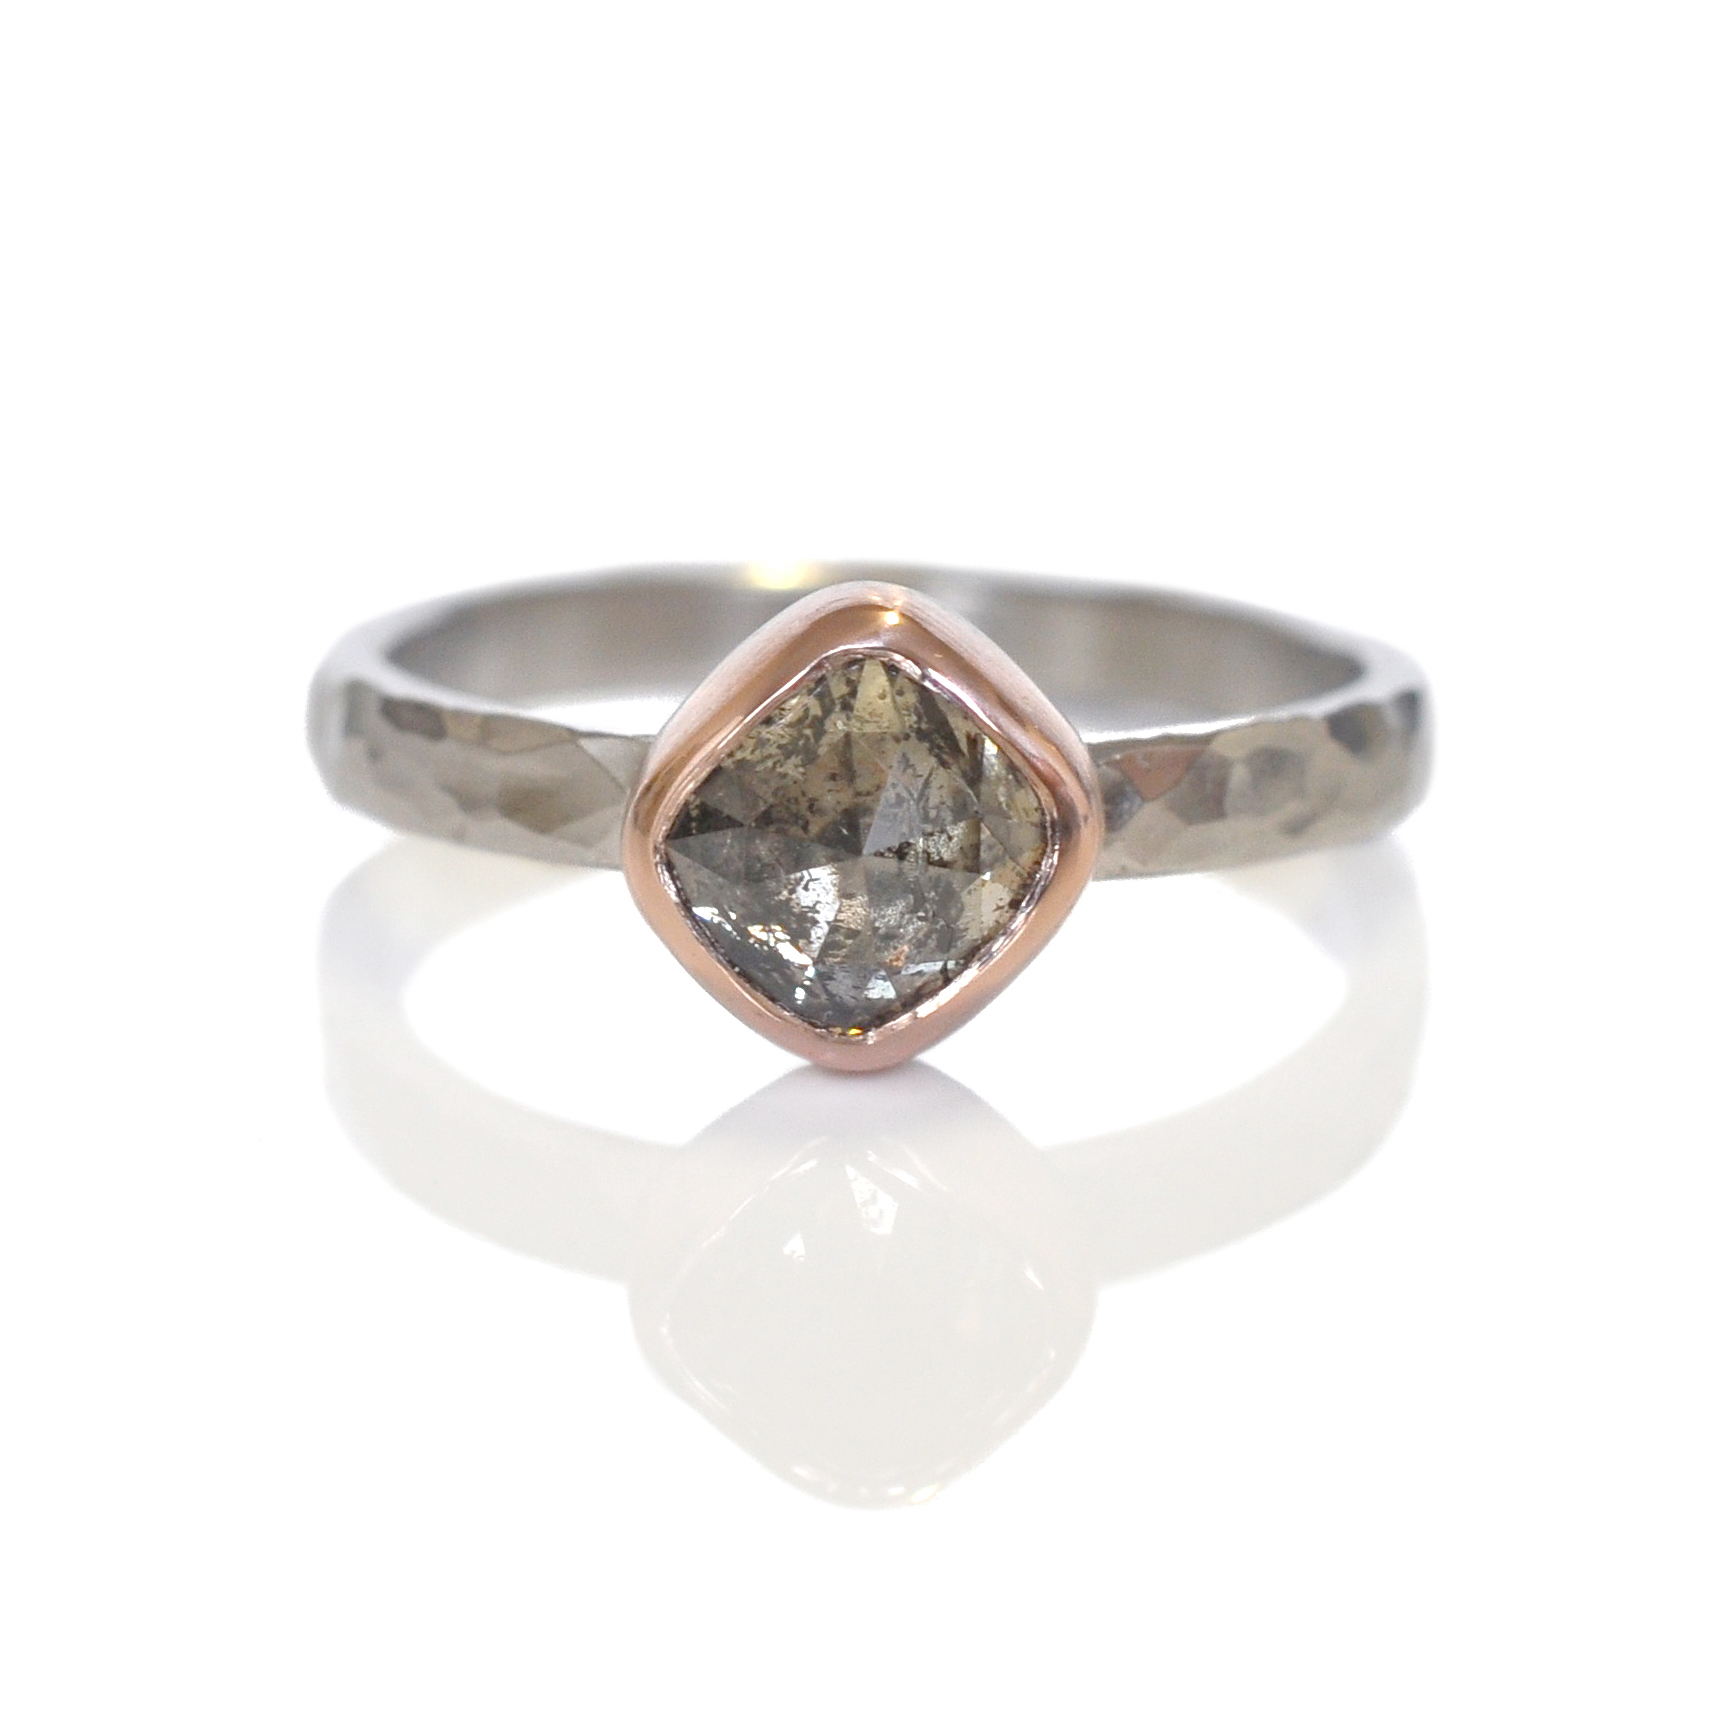 Jessica fell in love with this beautiful champagne rose cut diamond and together they designed the perfect setting for it in 14k red gold and palladium.